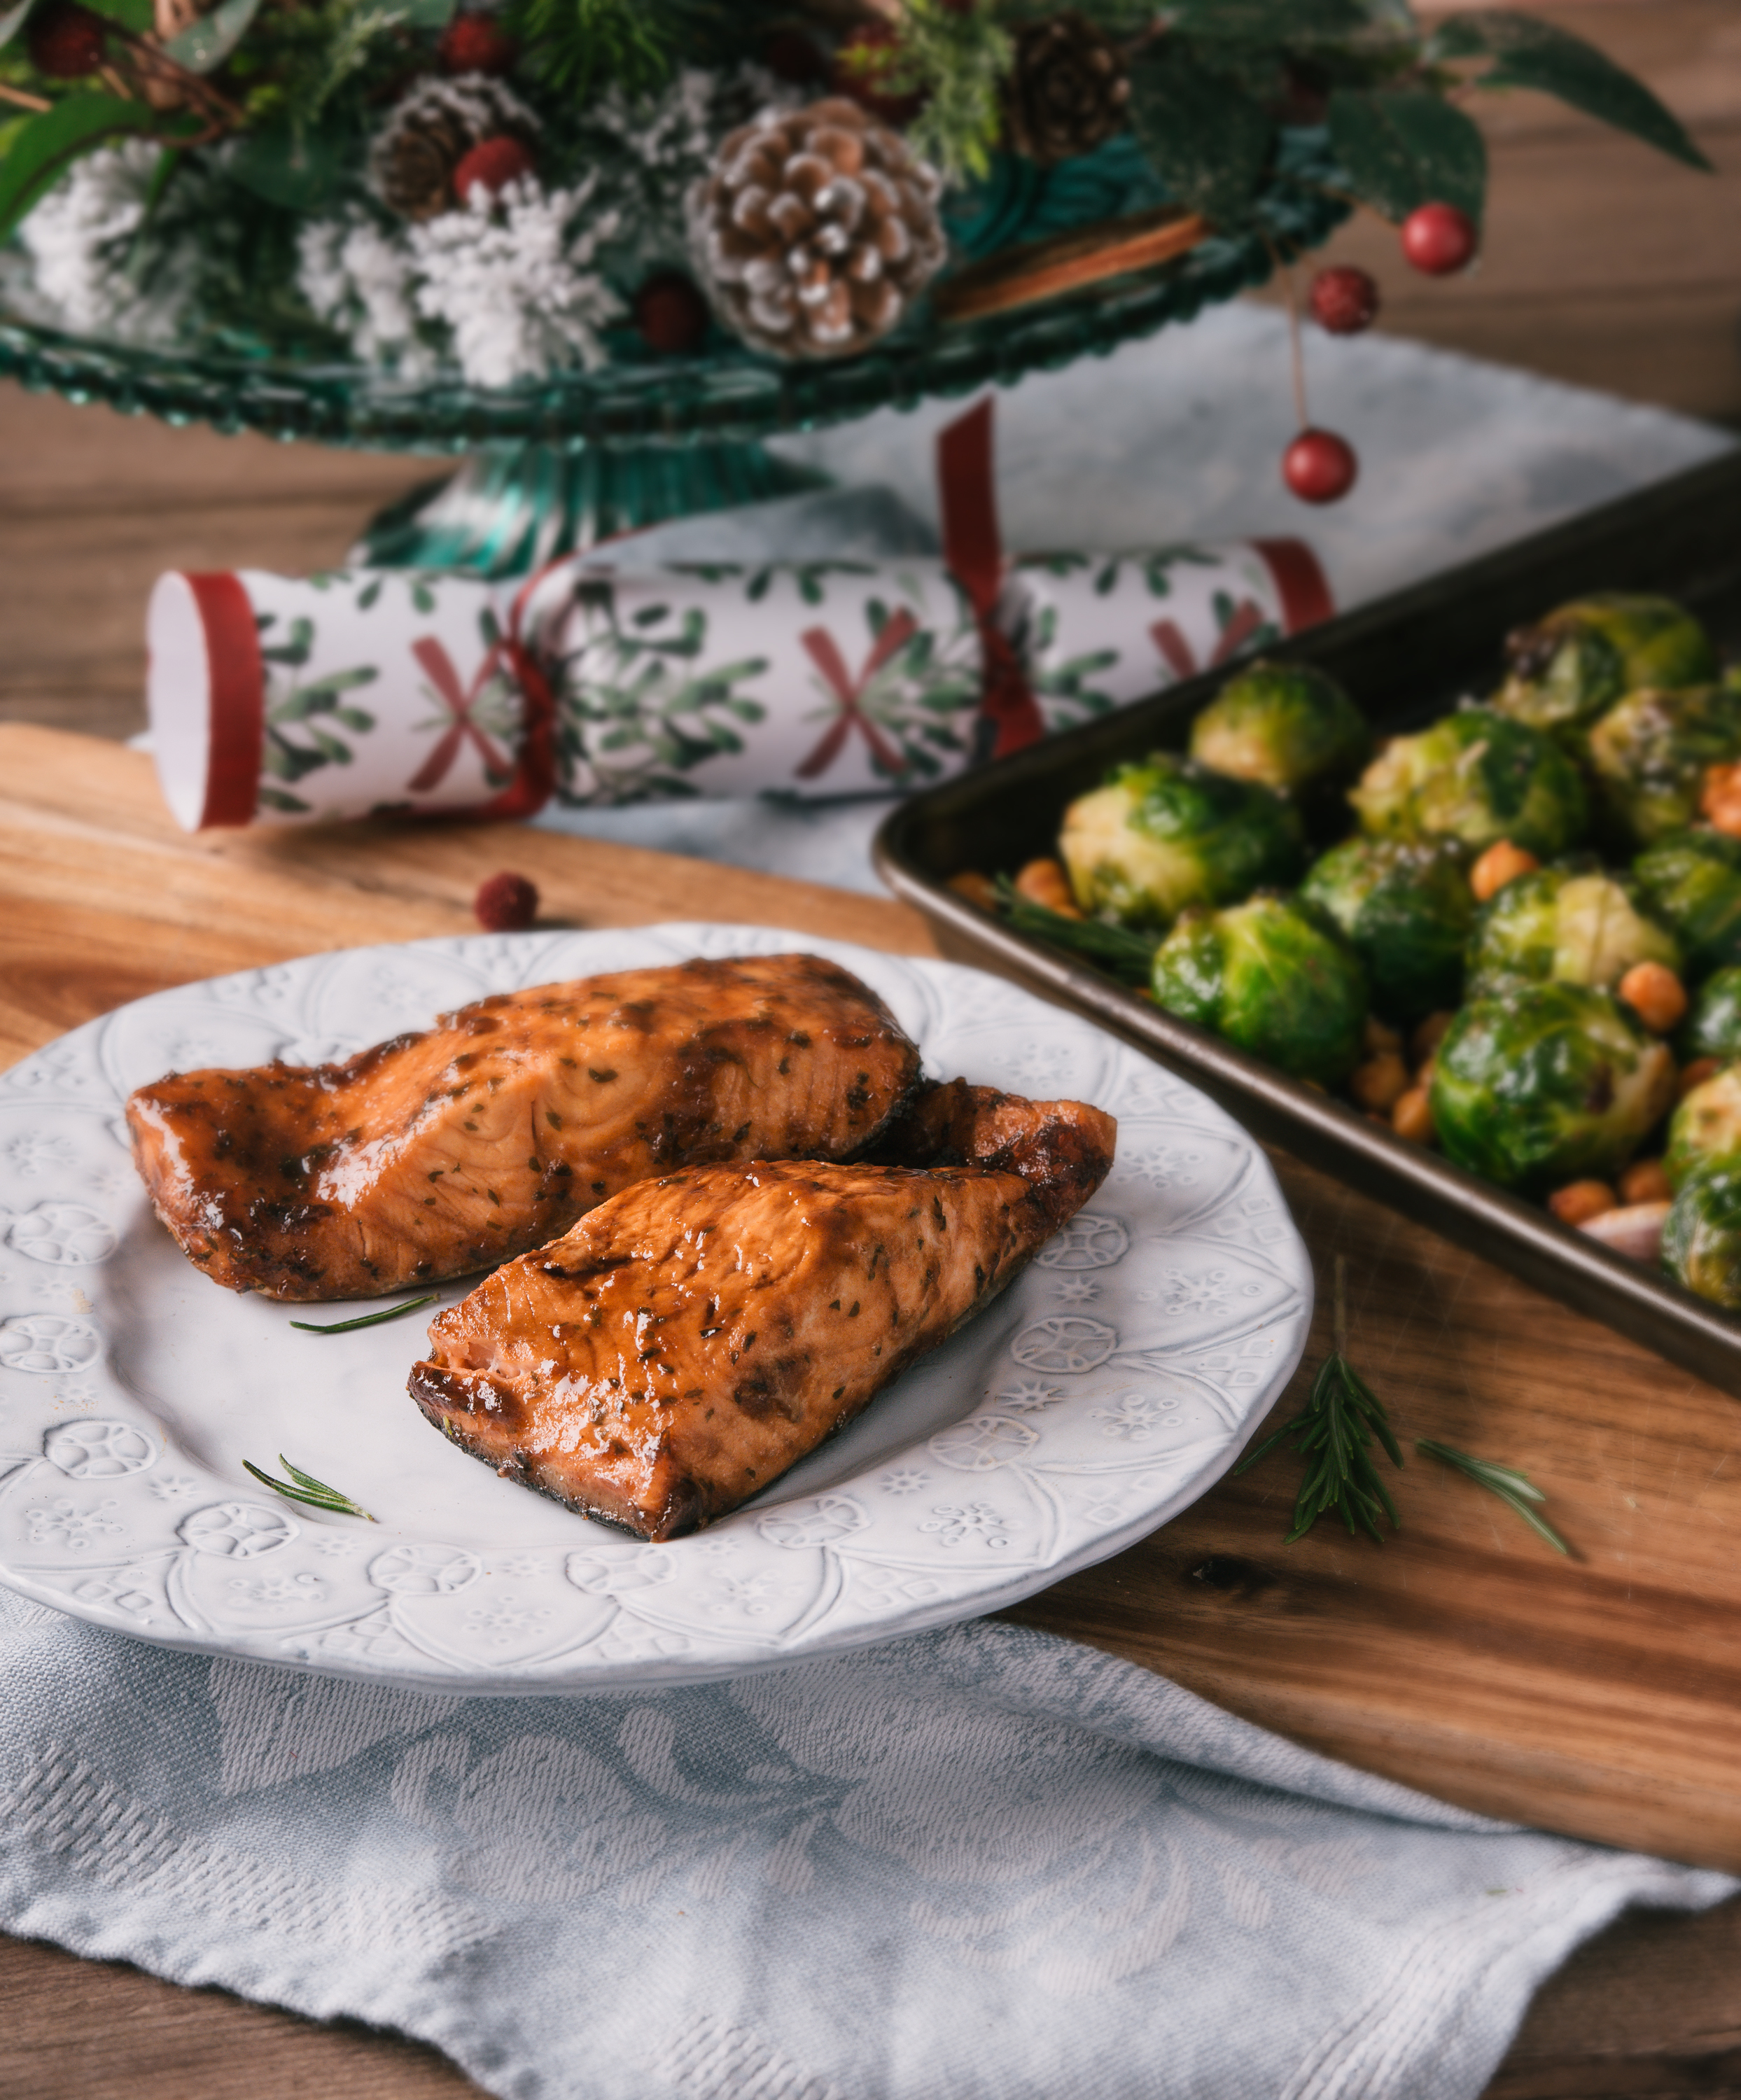 BigFish Brand Sticky Maple Salmon with Chickpeas and Sprouts, The Creative Larder Food Styling